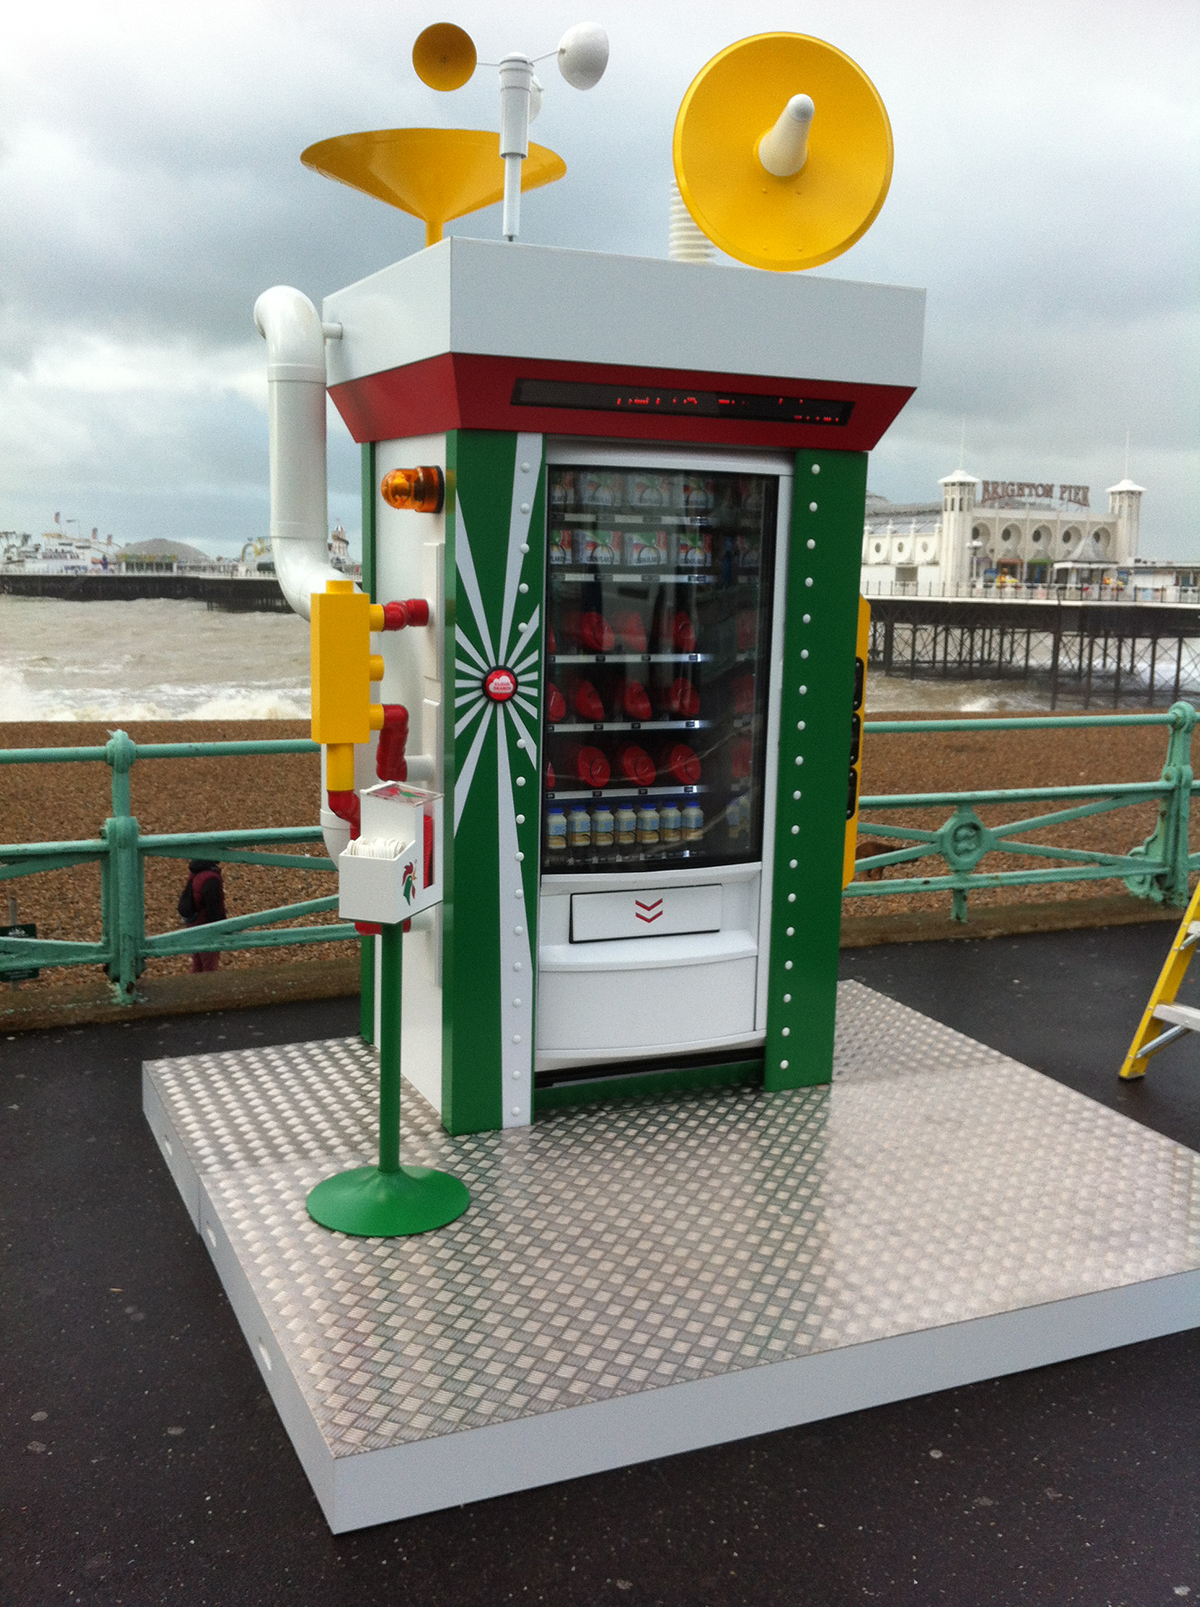 A Kellogg Cornflake vending machine by the sea, a pier in the background